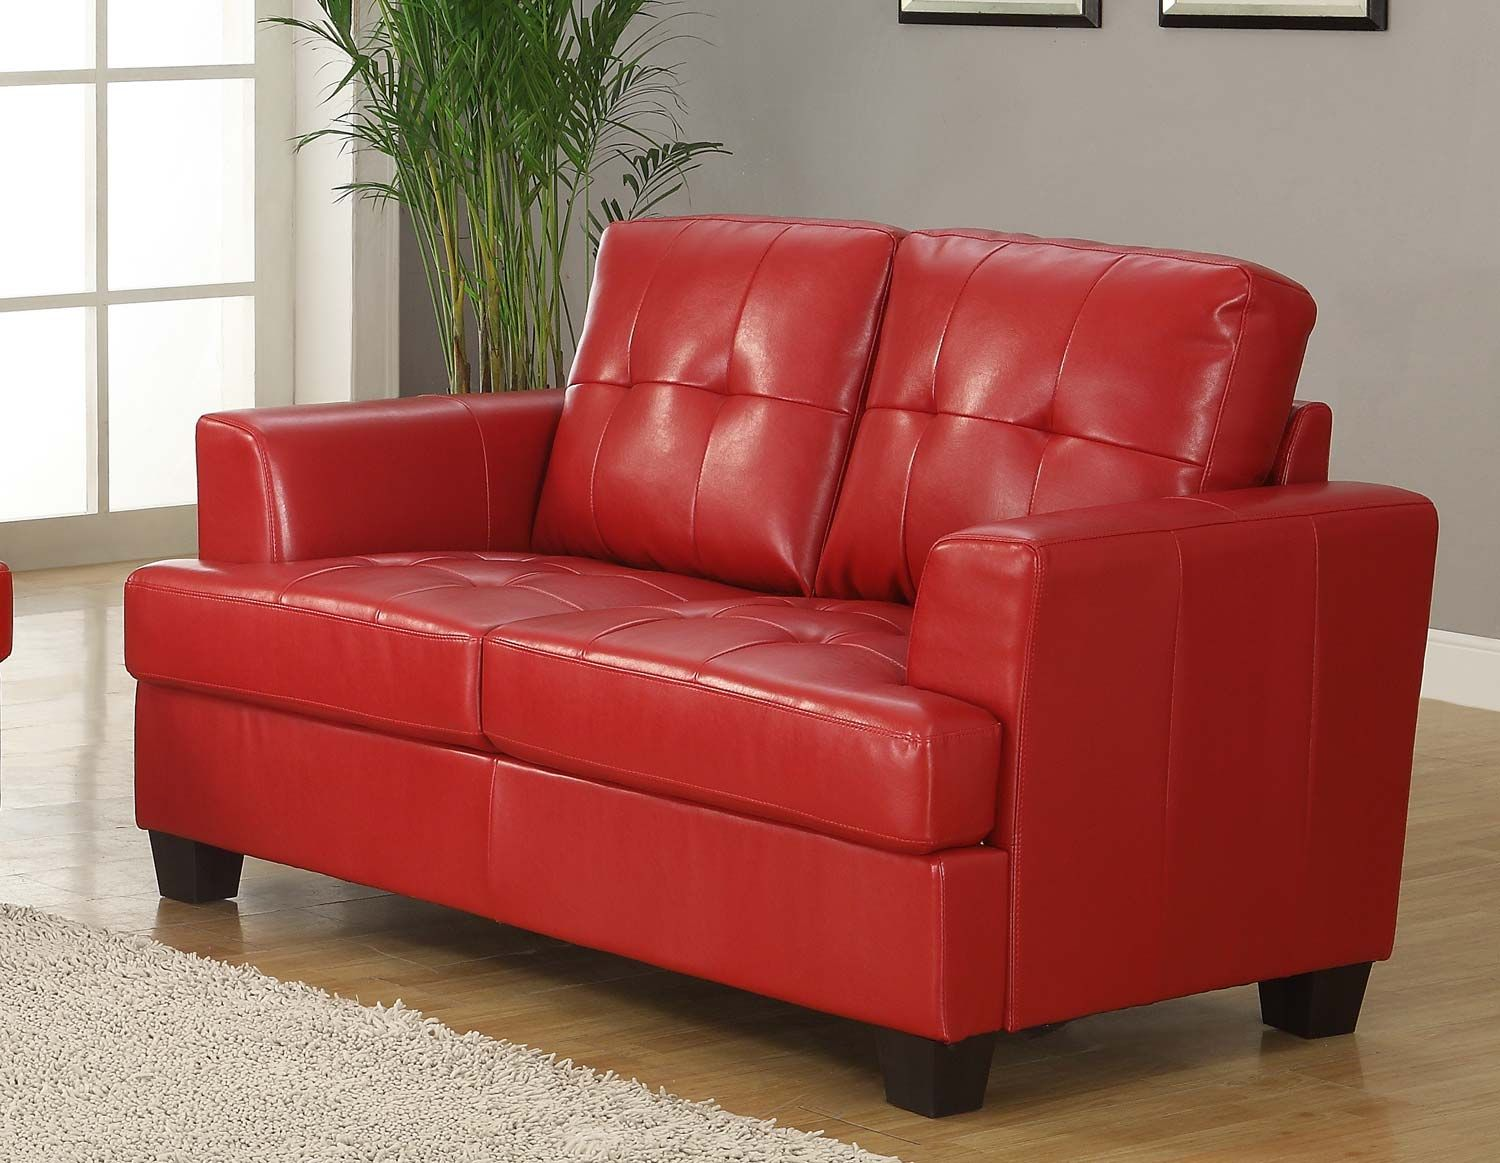 fold loveseats decor black metal to frame red bed sleeper your furniture chairs with house and pertaining sofa adorable loveseat out